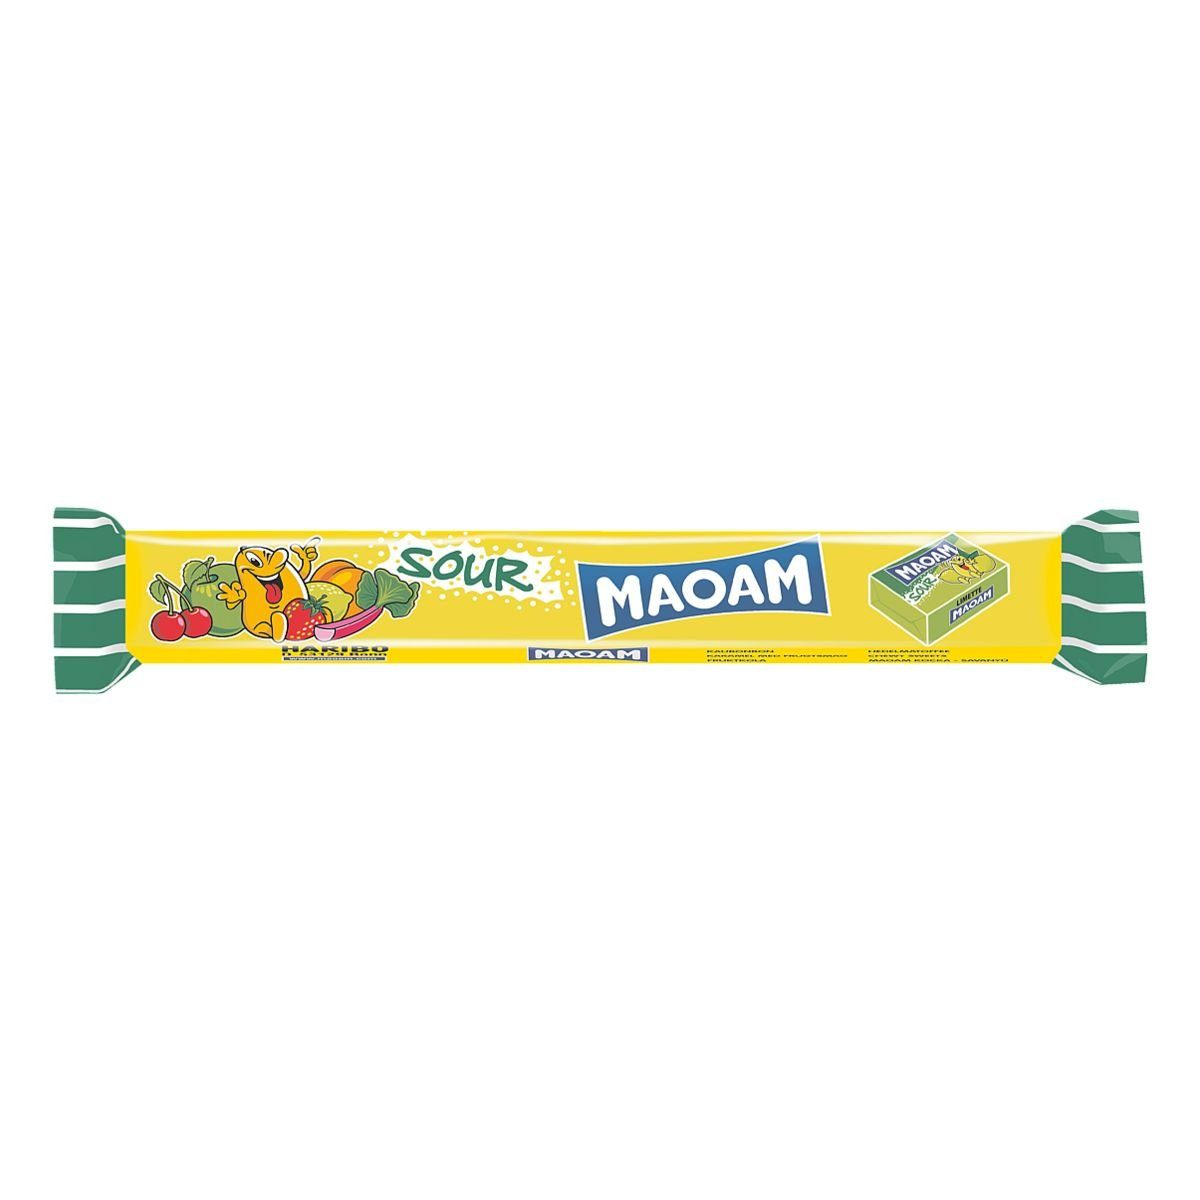 Maoam Kaubonbons »Maoam Sour«